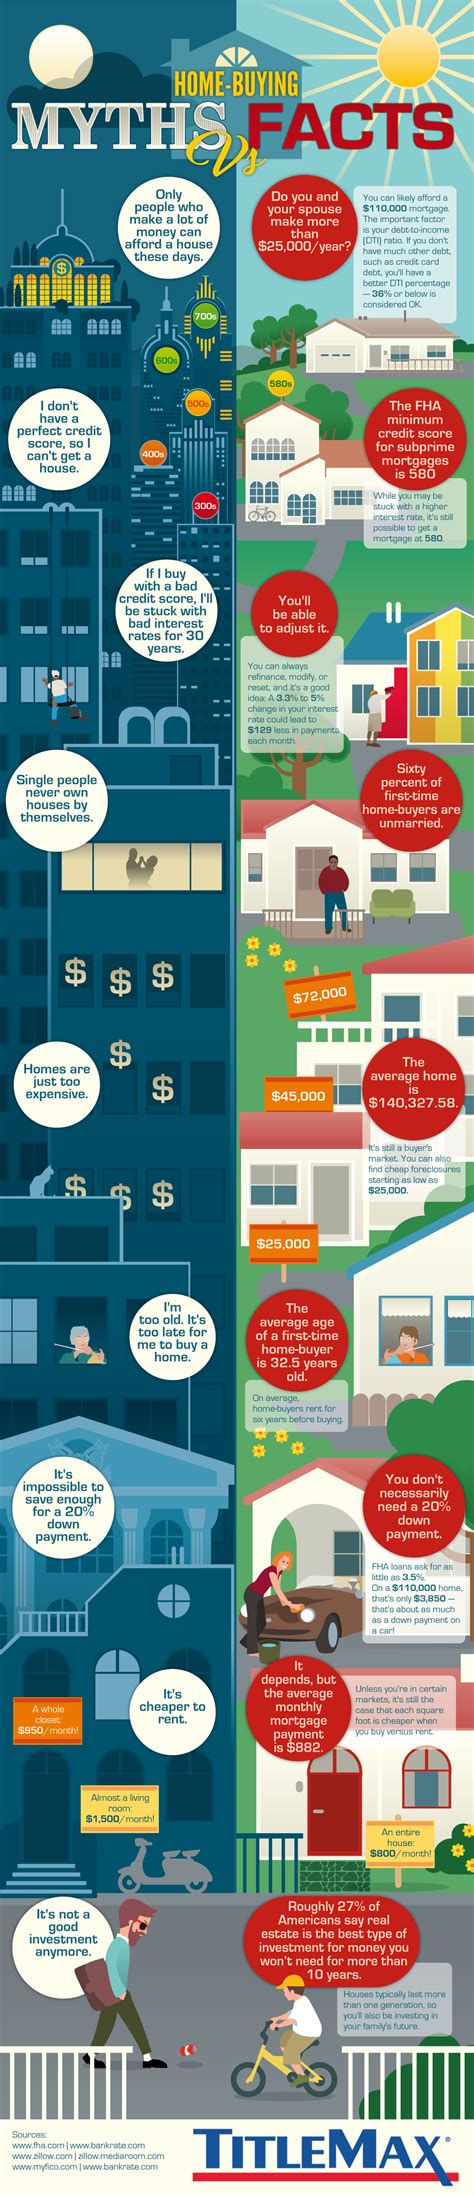 facts about buying a house myths and facts of first time home buying infographic